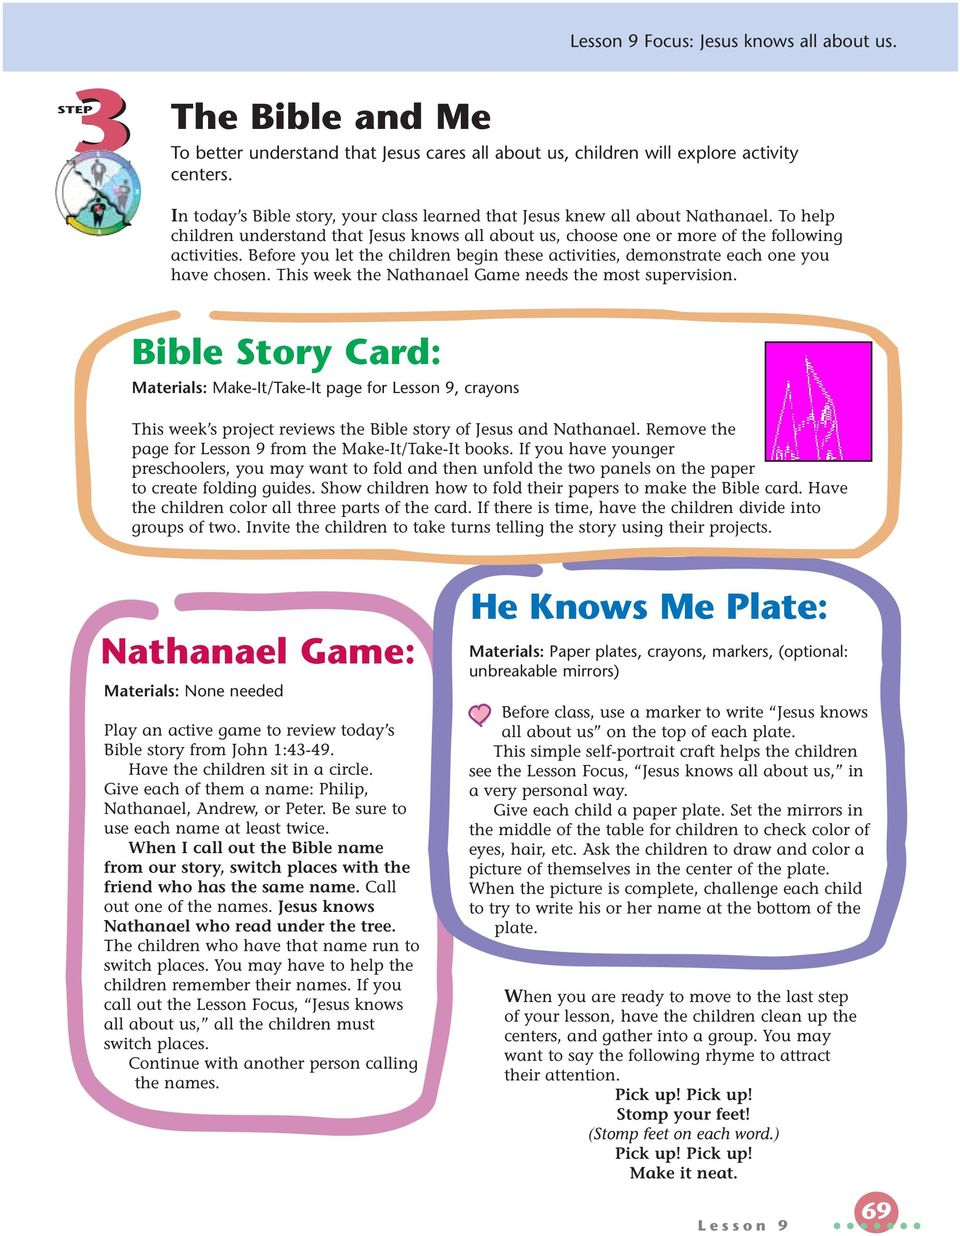 Before you let the children begin these activities, demonstrate each one you have chosen. This week the Nathanael Game needs the most supervision.